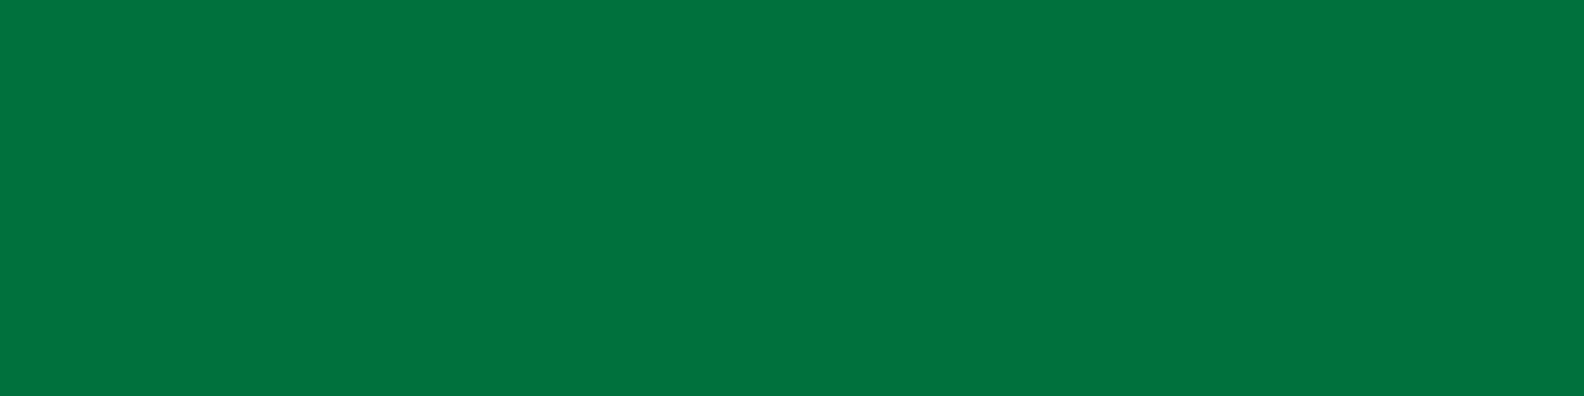 1584x396 Dartmouth Green Solid Color Background